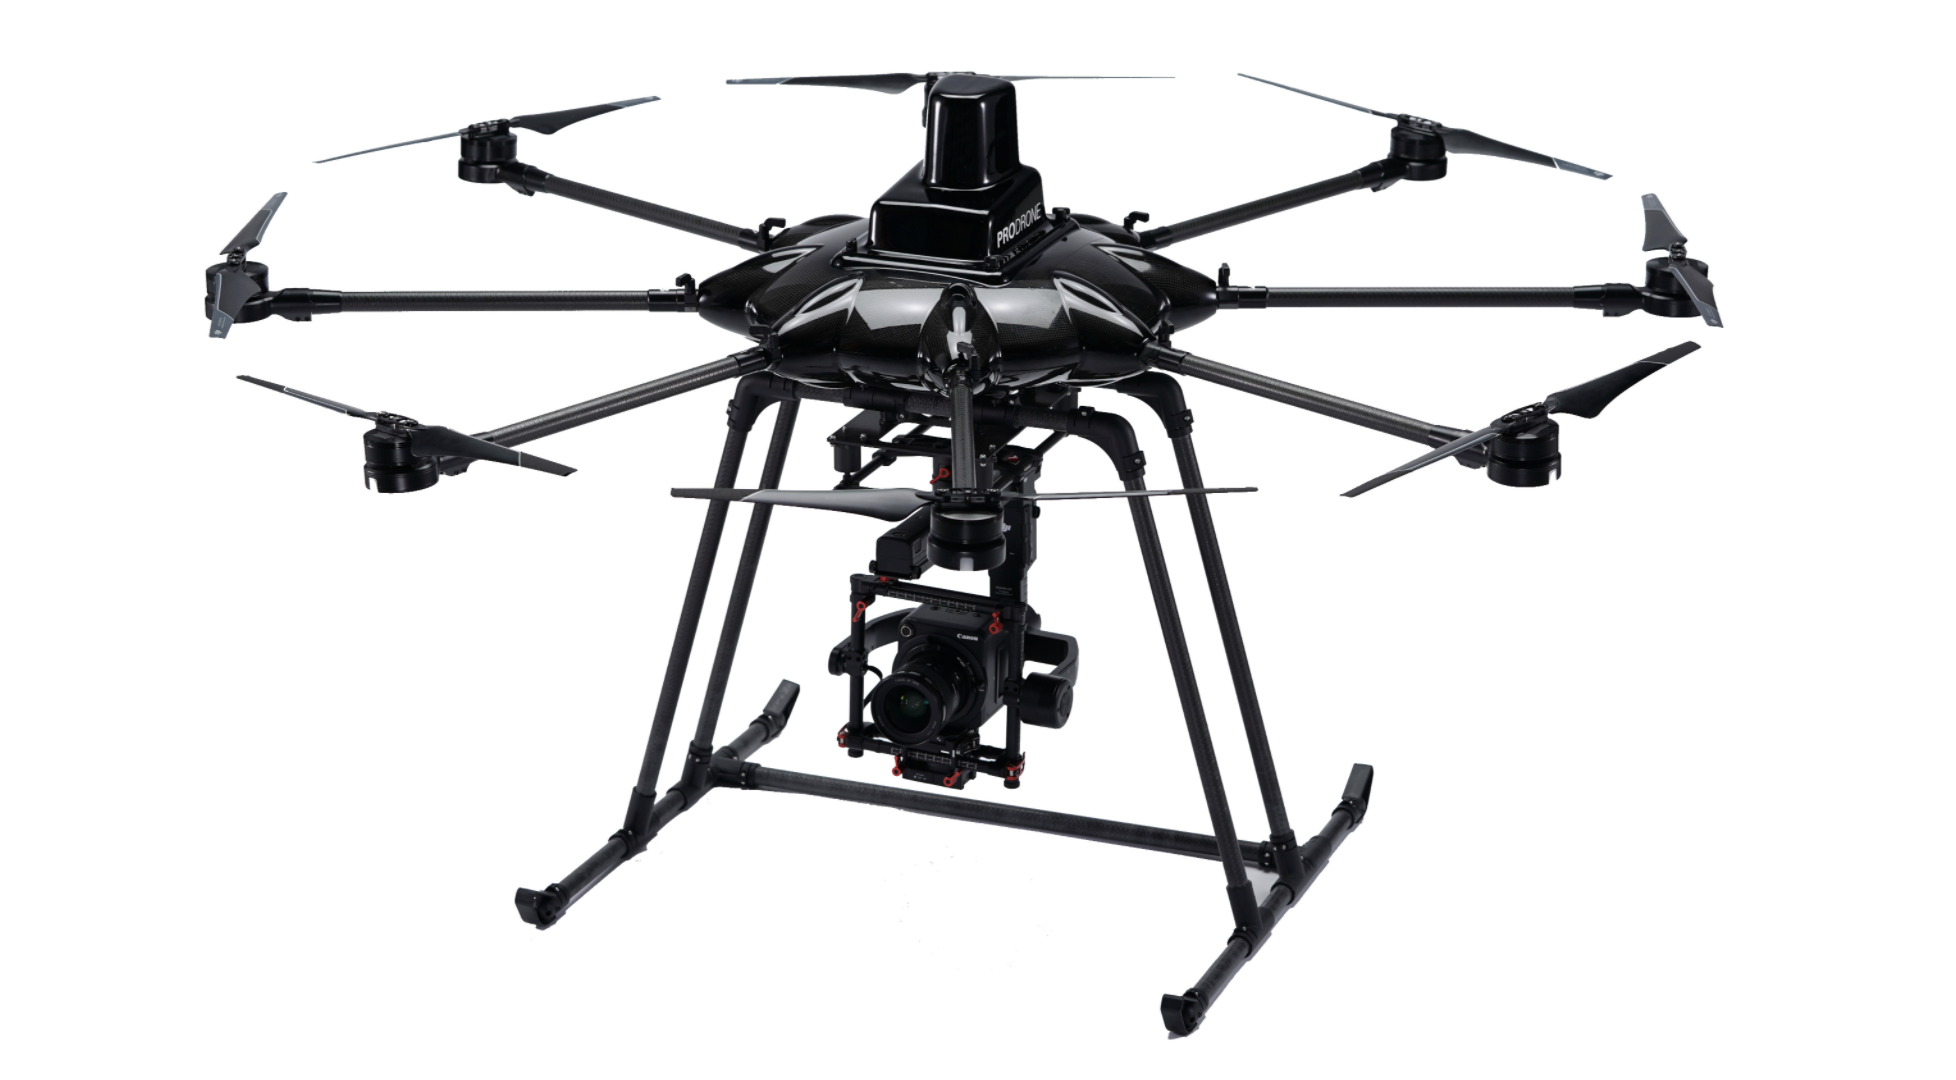 PRO DRONE PD8-AW-HS